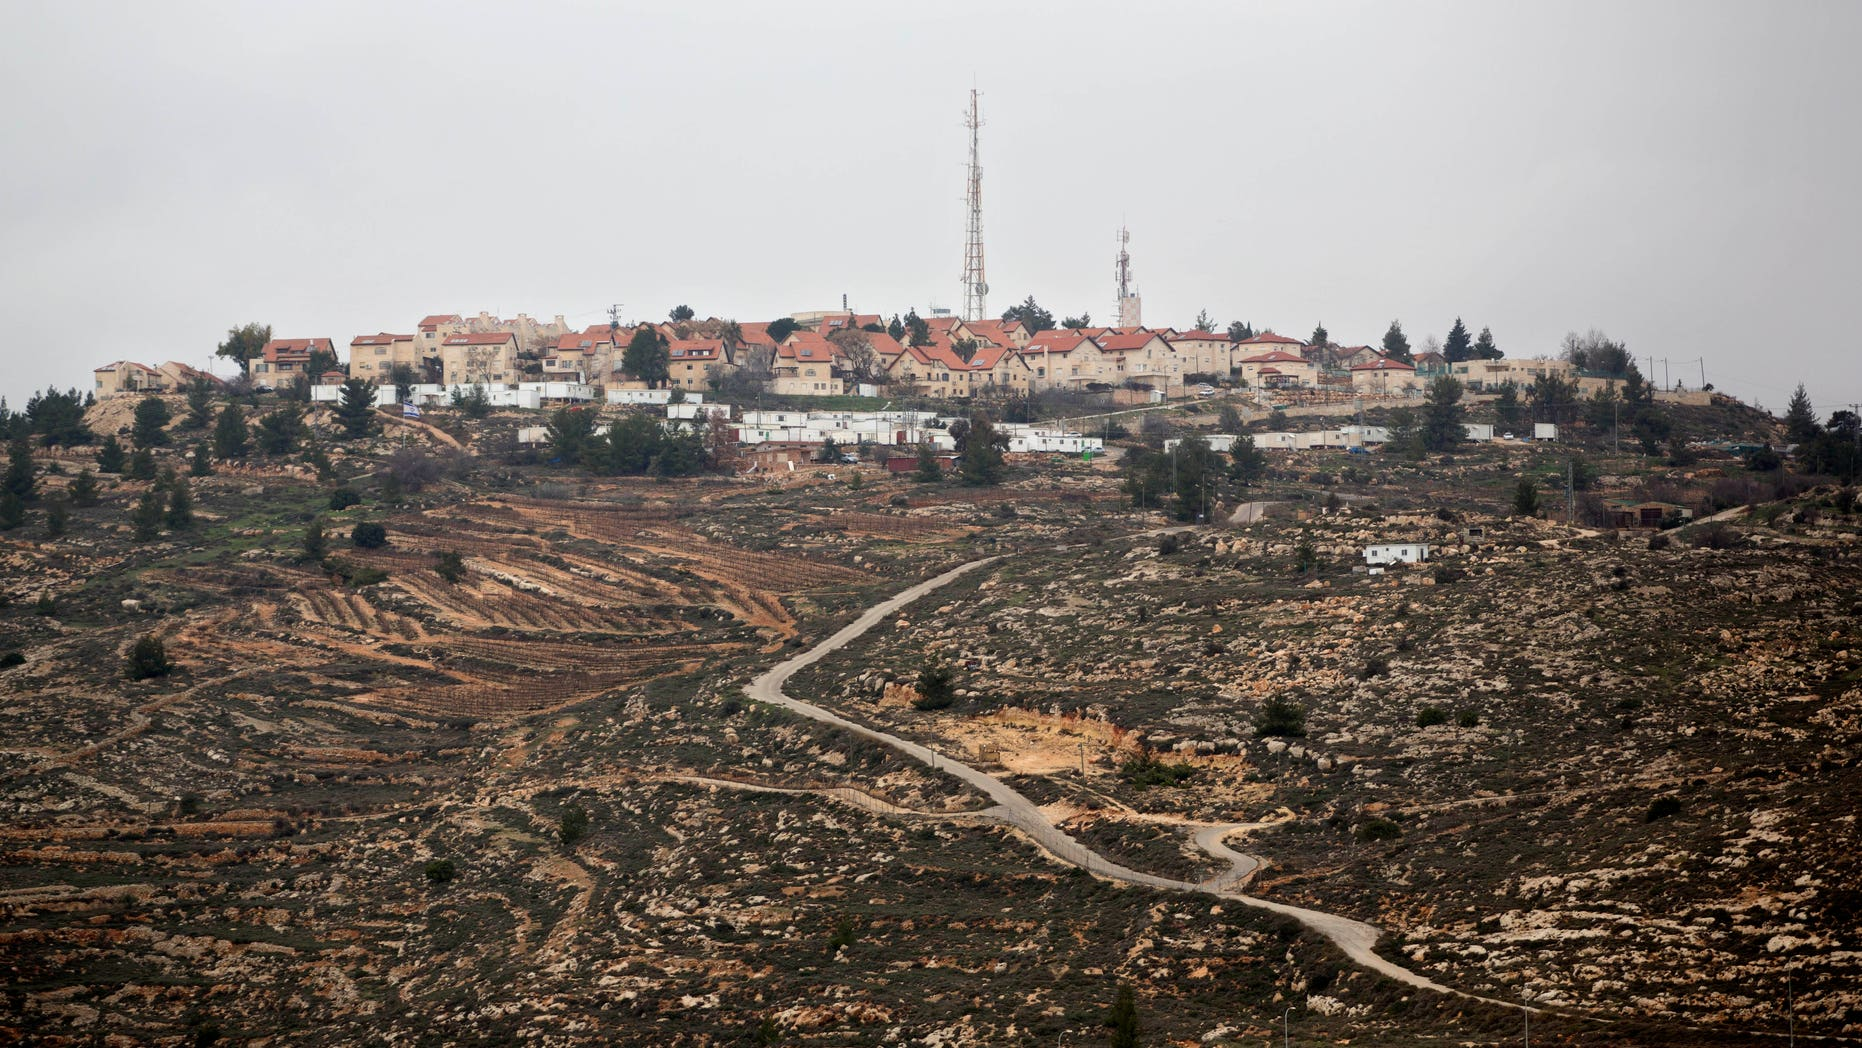 """A general view of the West Bank Jewish settlement of Psagot near Ramallah, Monday, Jan. 27, 2014. The Palestinians' """"extreme and reckless"""" rejection of an Israeli suggestion that some Jewish settlers remain in a future Palestinian state proves that they don't want peace, Prime Minister Benjamin Netanyahu's office said Monday. The harshly worded statement follows a flurry of back-and-forth condemnations sparked by an Associated Press report that Netanyahu believes all Jewish settlers should have the right to remain in their homes in a future Palestine. (AP Photo/Sebastian Scheiner)"""